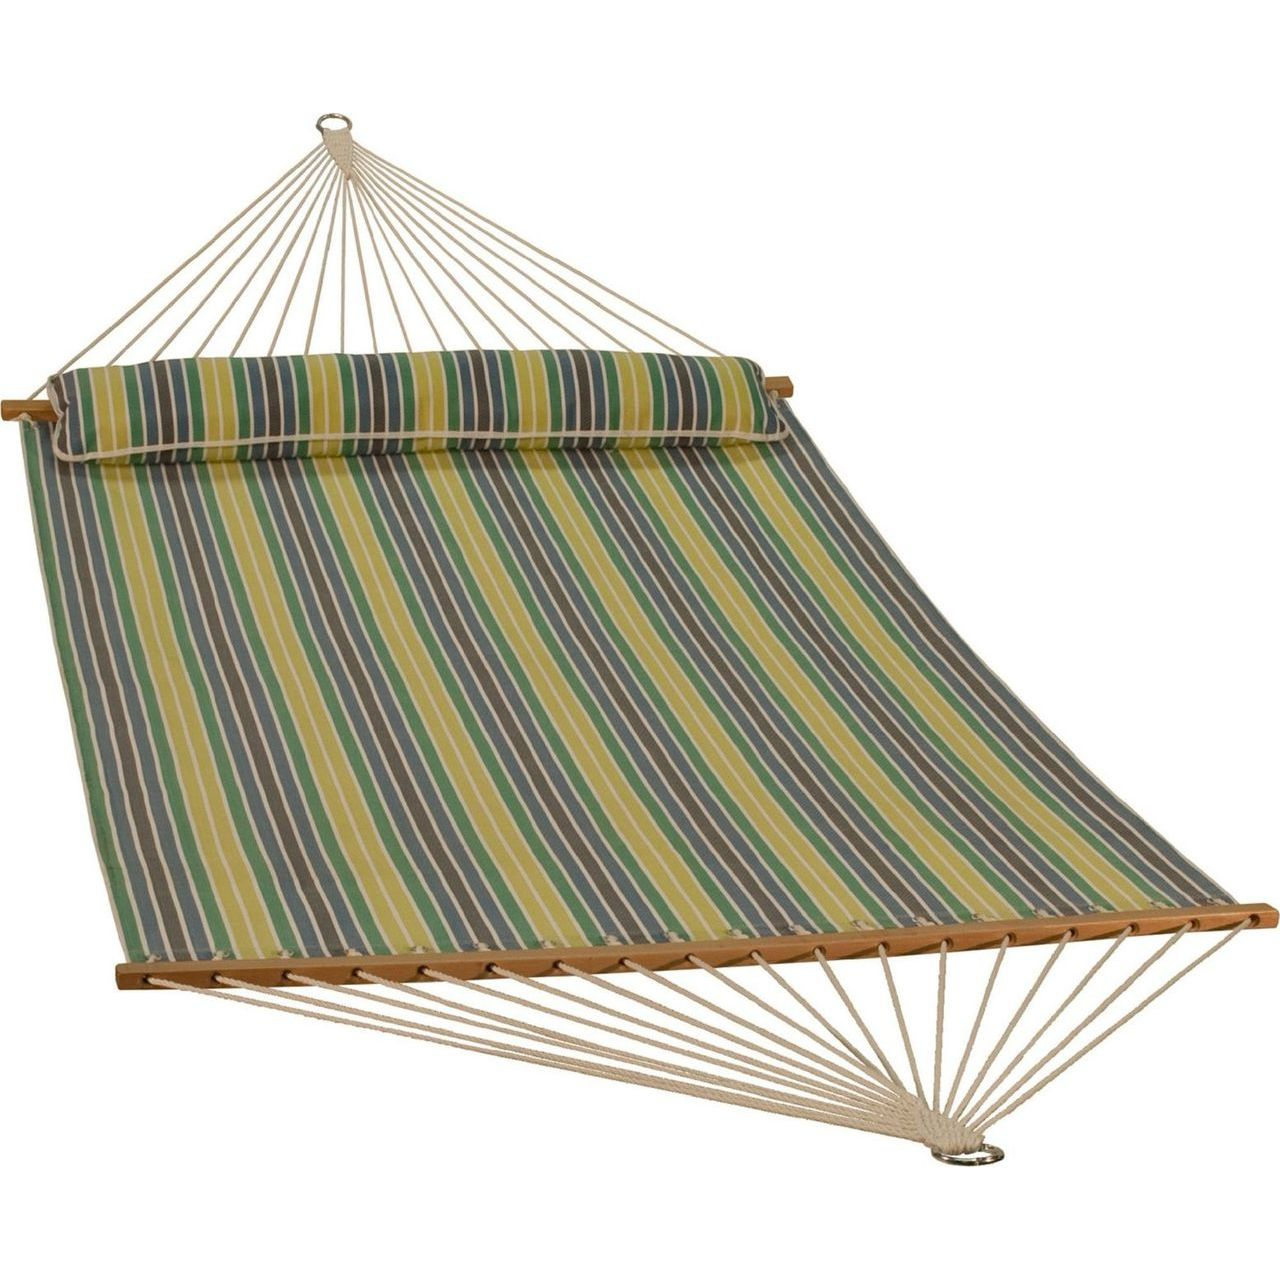 Gleason Quick Dry Hammock With Bolster - Spring Stripe